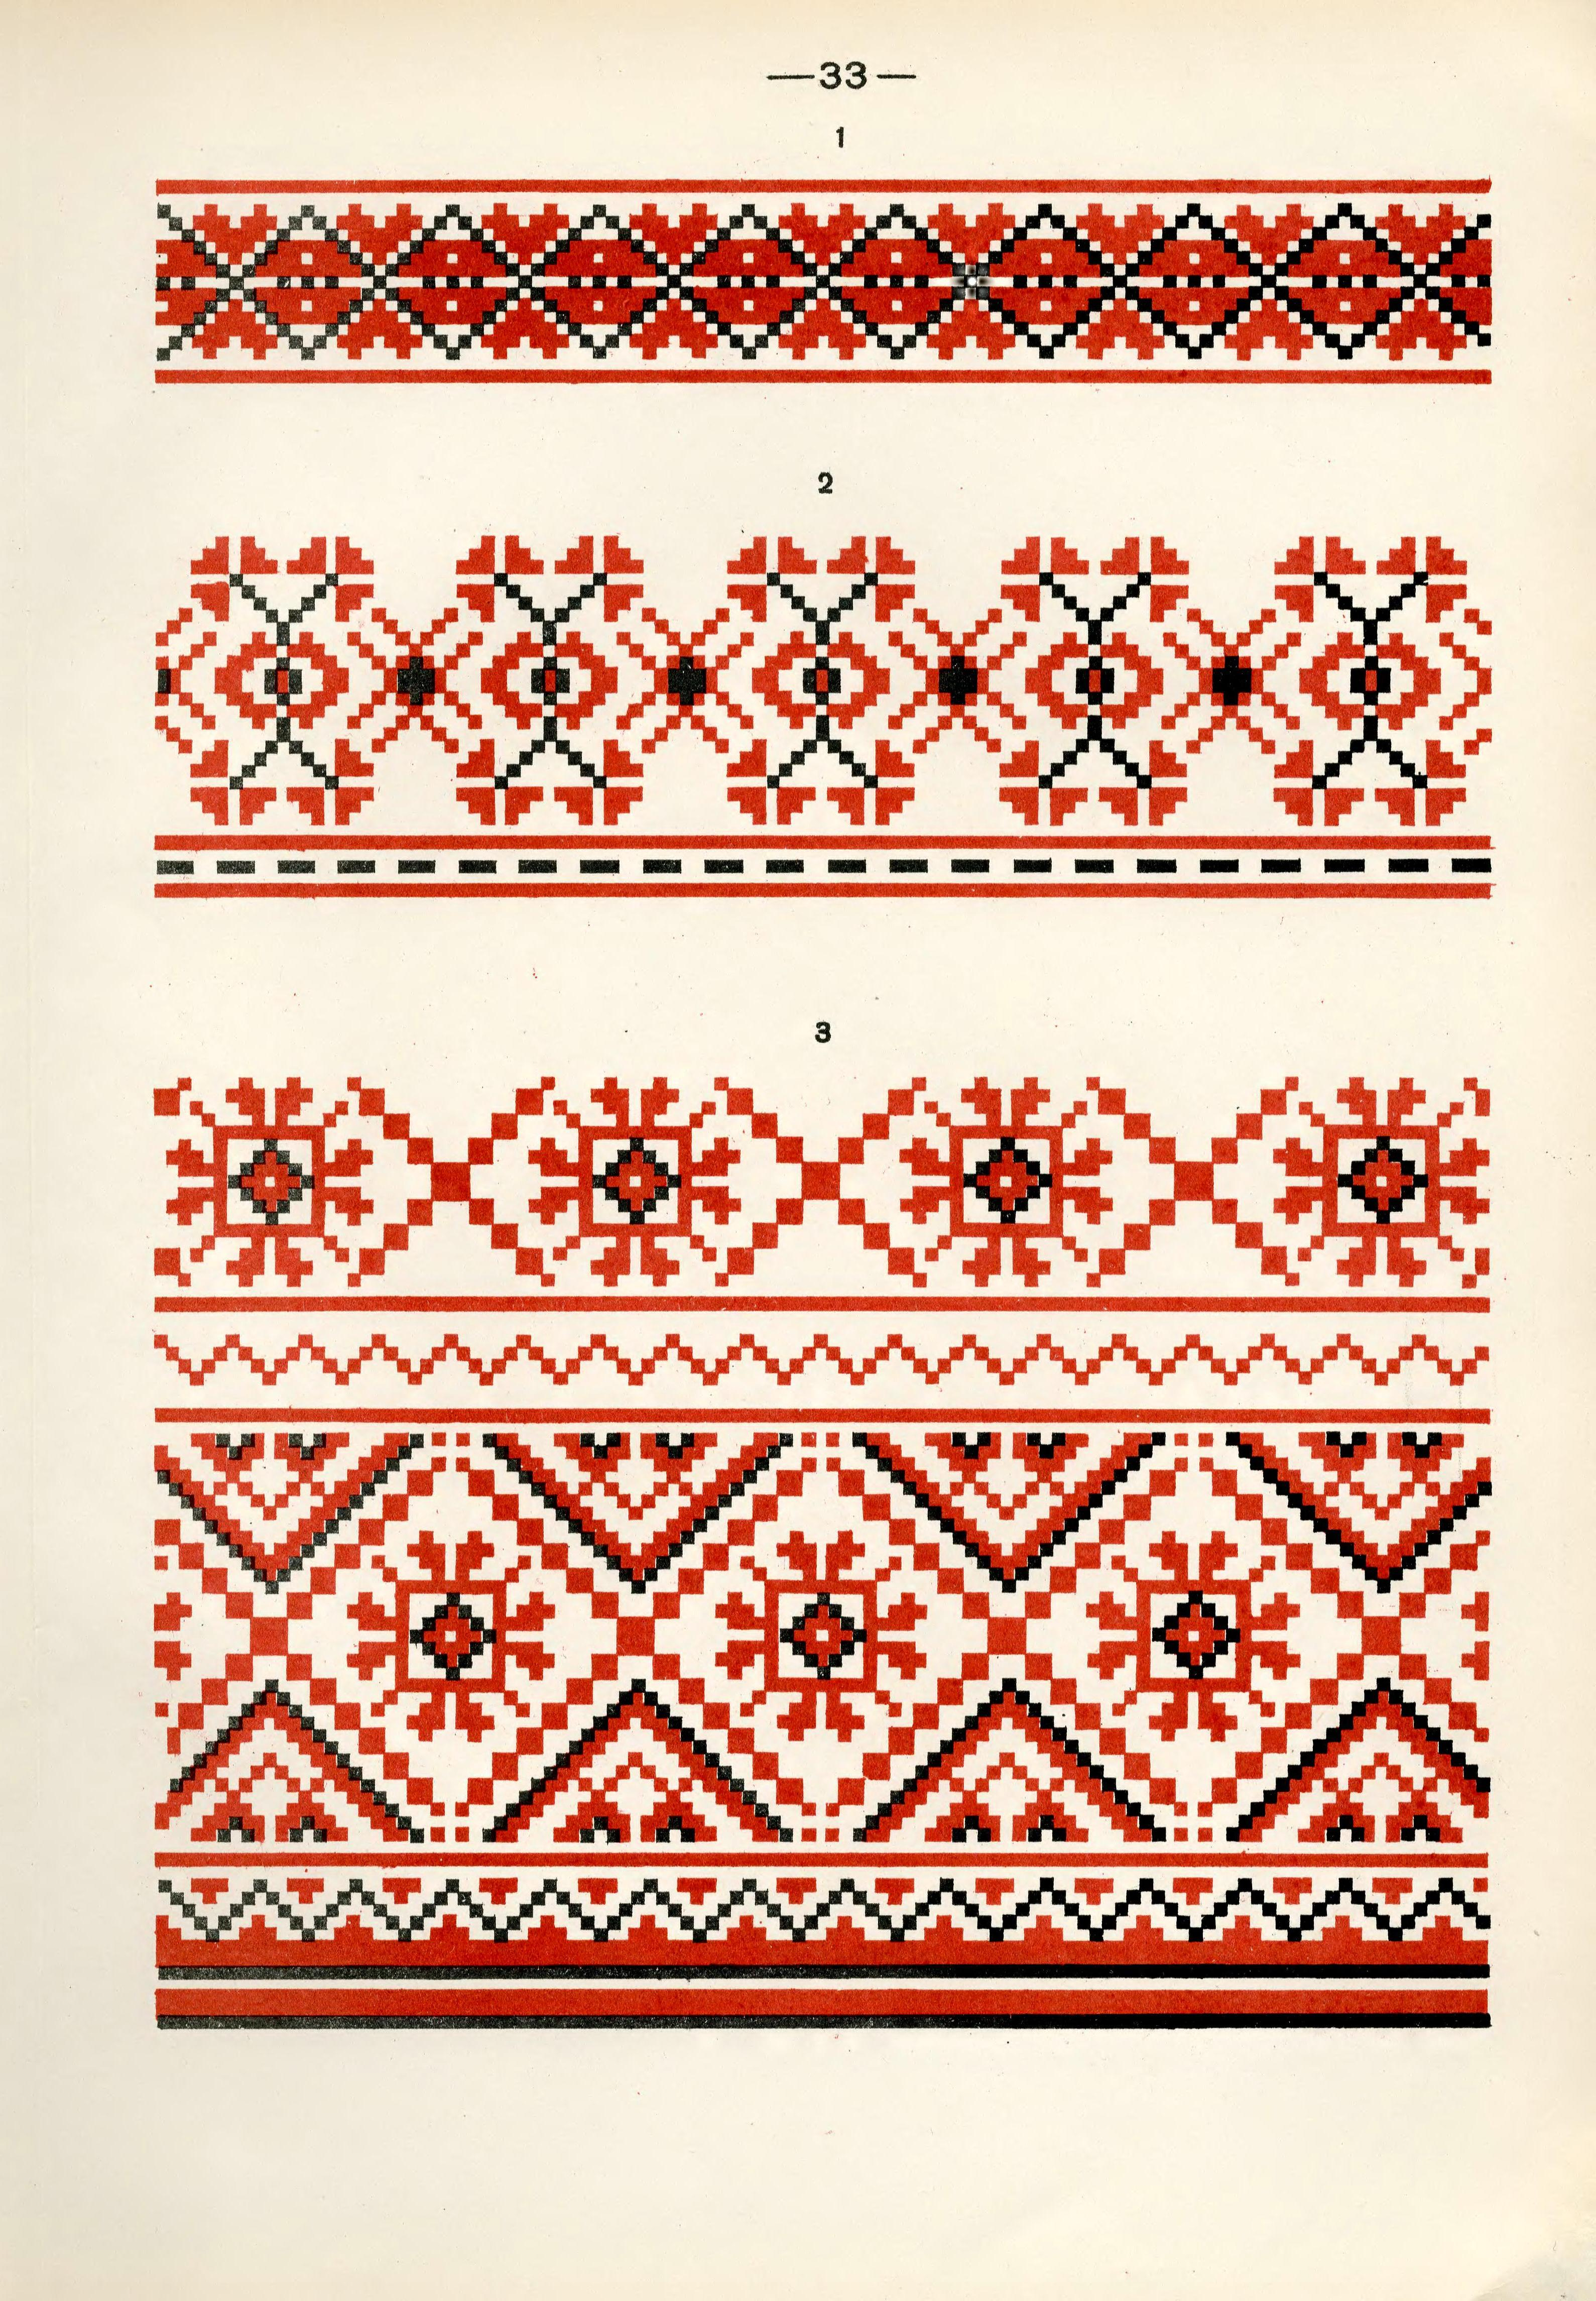 Belarusian ethnic ornament, ethnic ornament, Belarusian, embroidery, ethnic embroidery, ethnic pattern, red pattern, blue pattern, ethnical, design, tracery, weave, sewing, needlework, stitching,  ethnical design, ethnical tracery, ethnical weave, ethnical sewing, ethnical needlework, ethnical stitching,